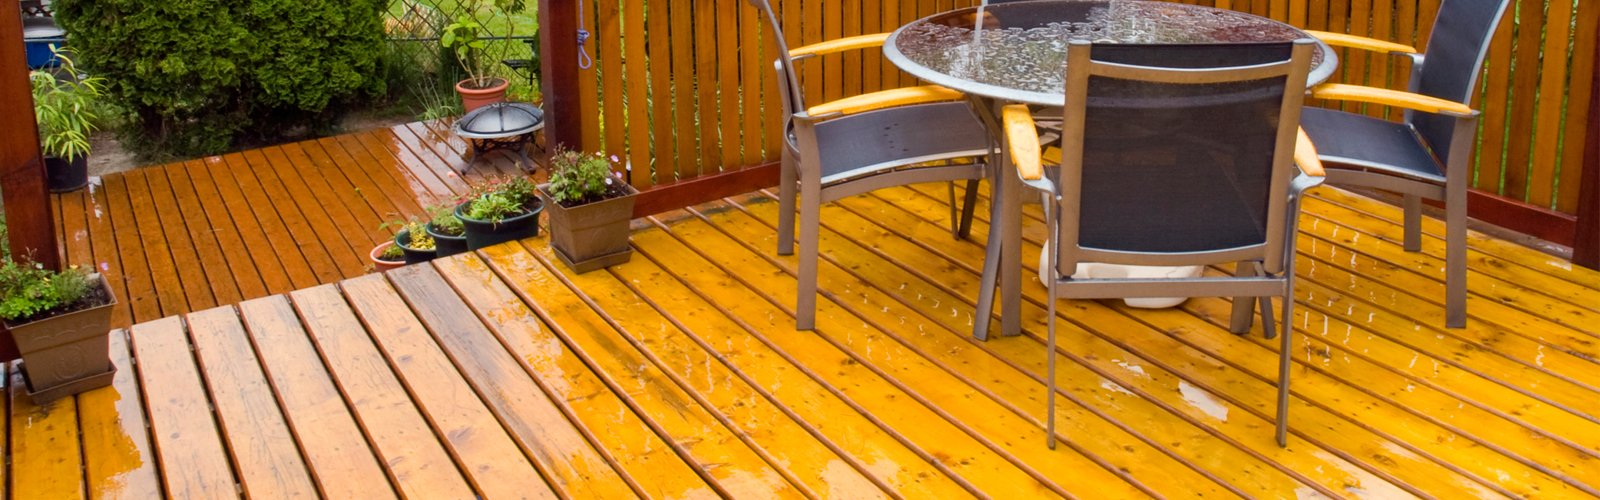 Deck Powerwashing Services in Allentown